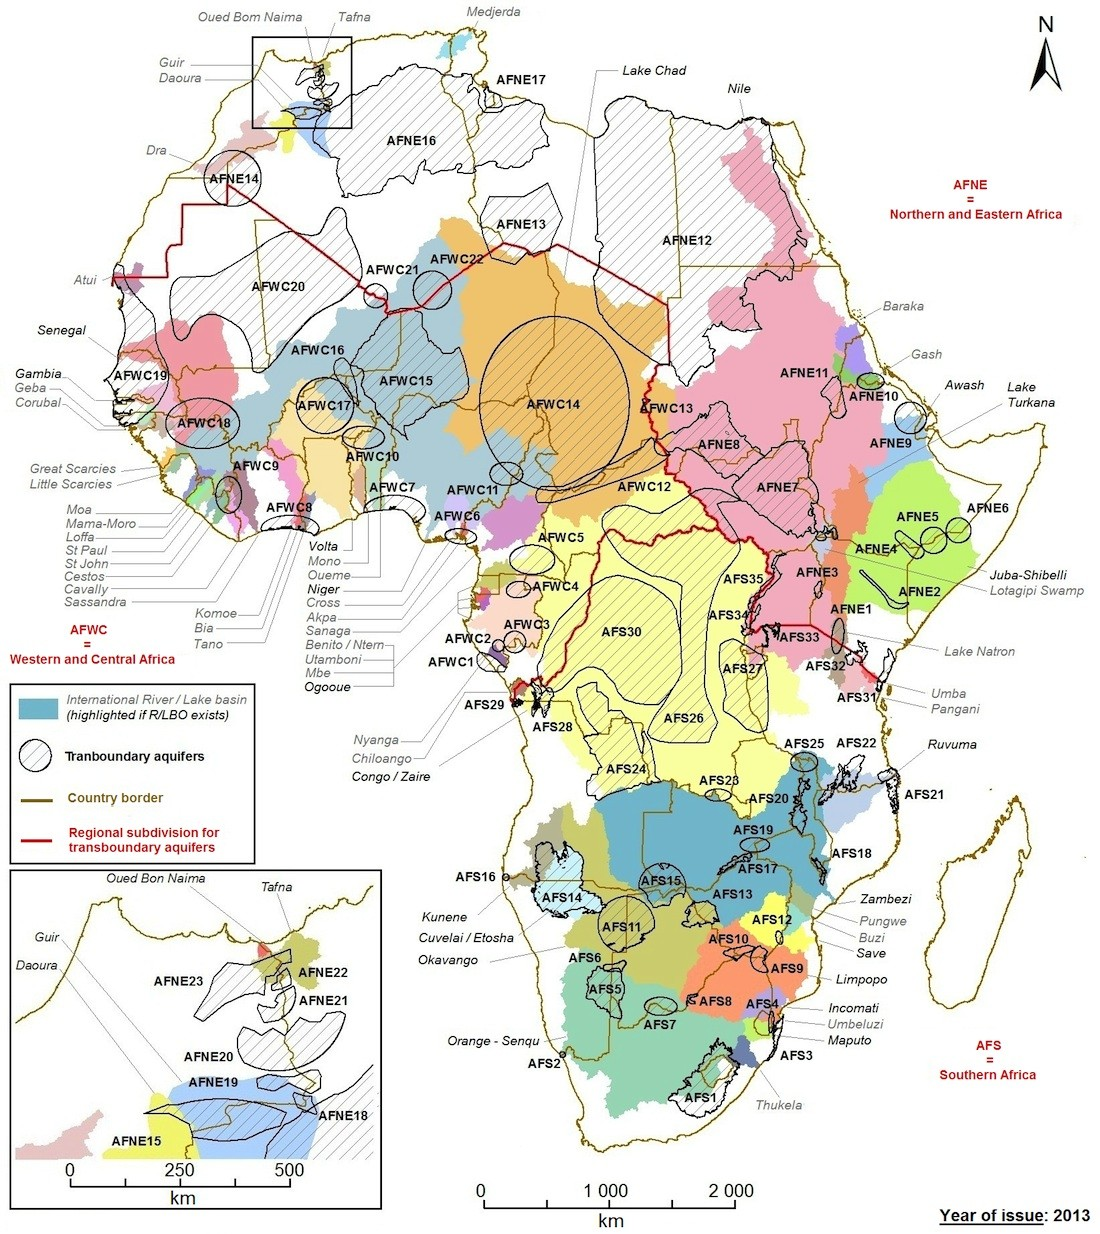 Transboundary Aquifer Map for Africa | Water, Land and ...